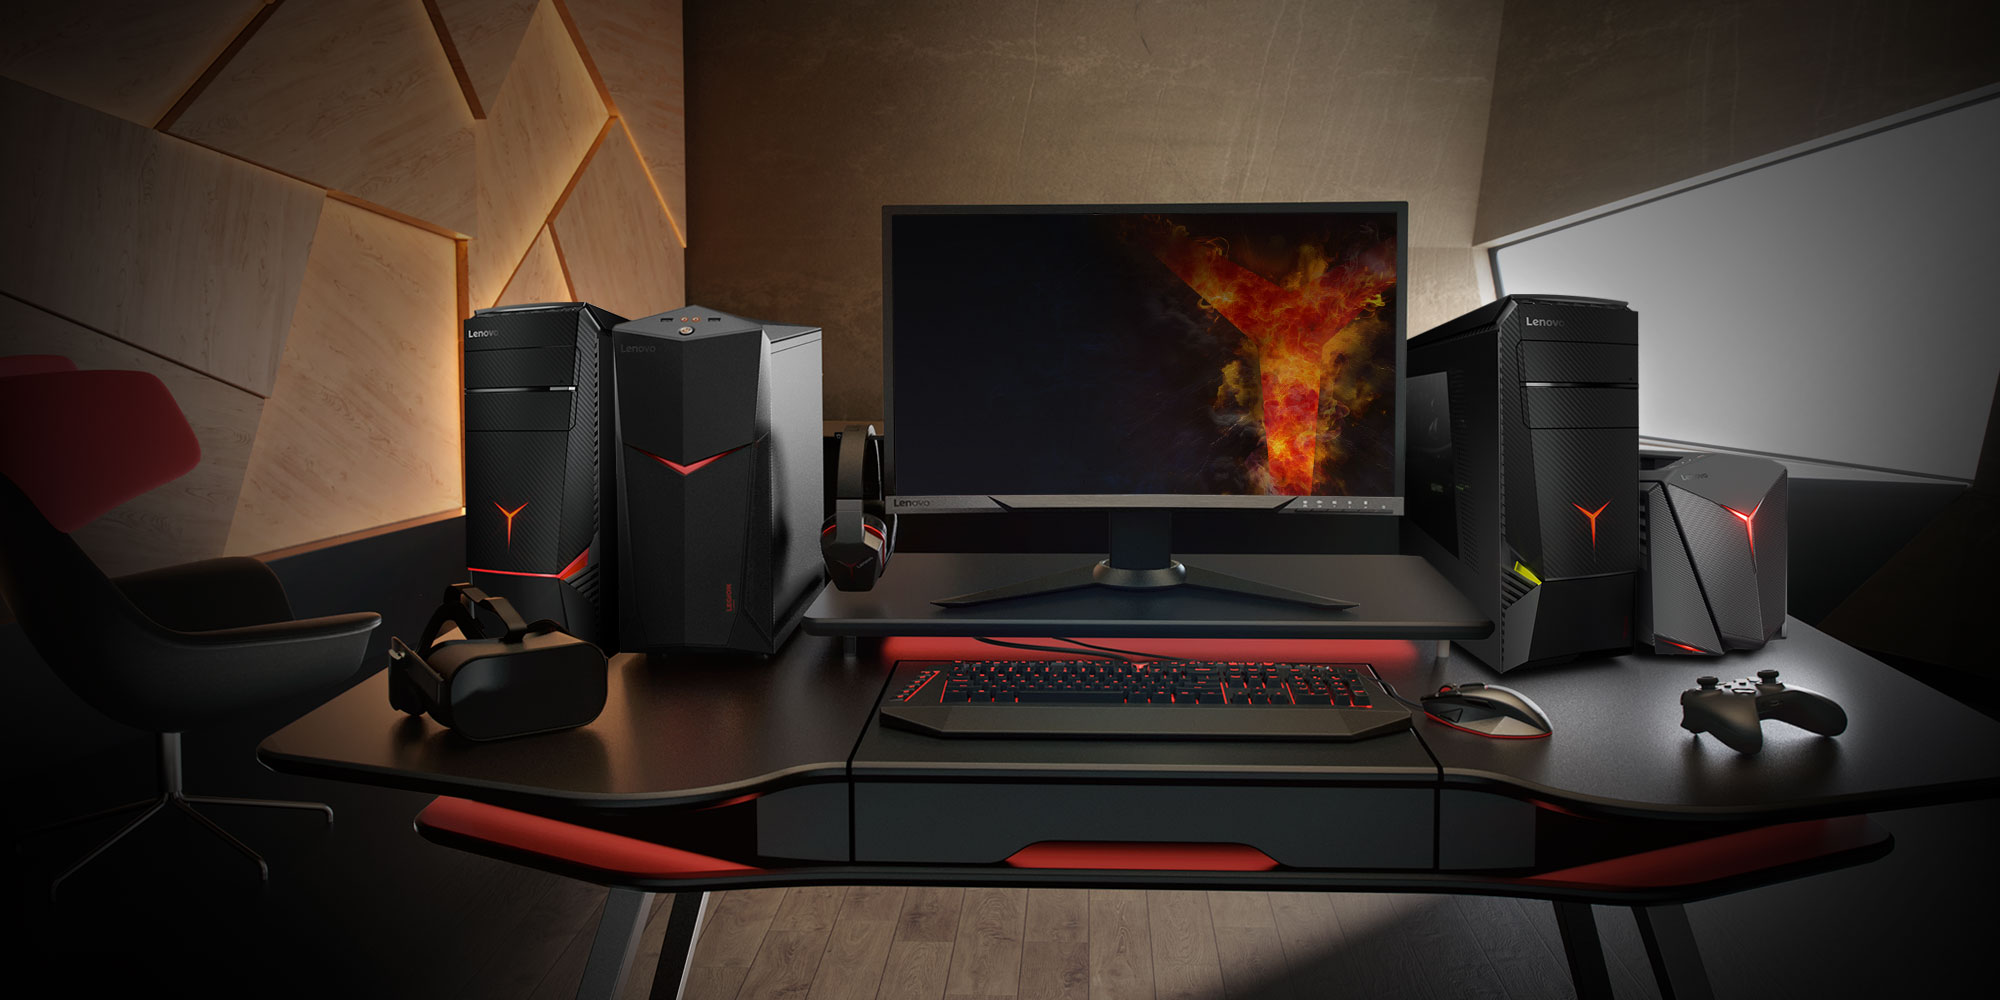 Lenovo Gaming Towers and Gaming Monitor